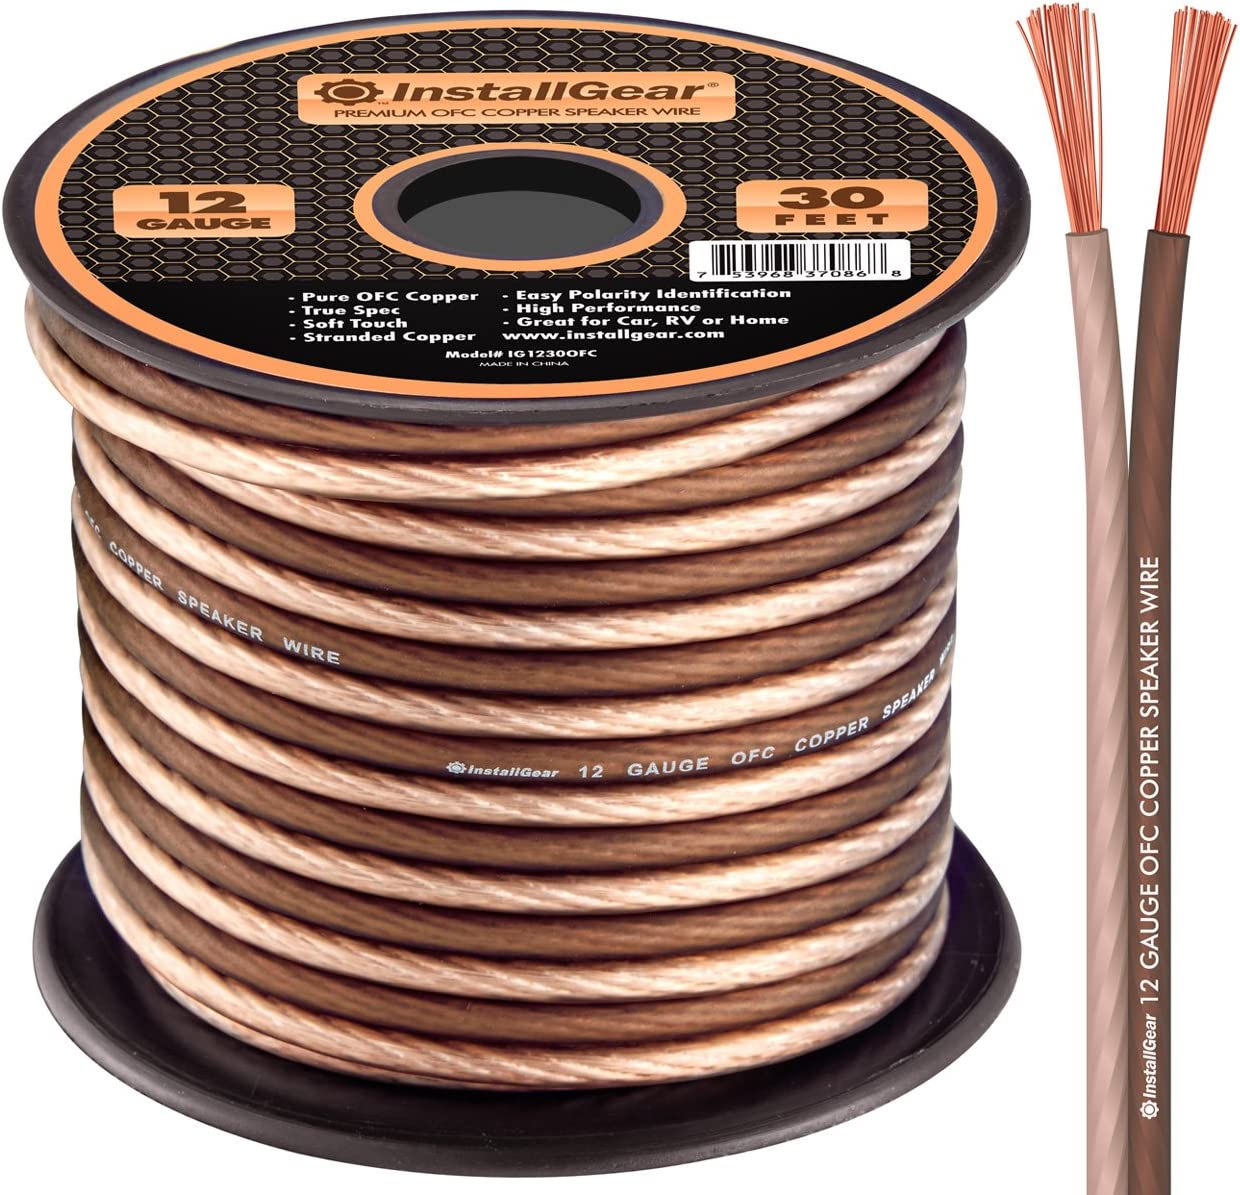 Amazon Com Installgear 12 Gauge Speaker Wire 99 9 Oxygen Free Copper True Spec And Soft Touch Cable 30 Feet